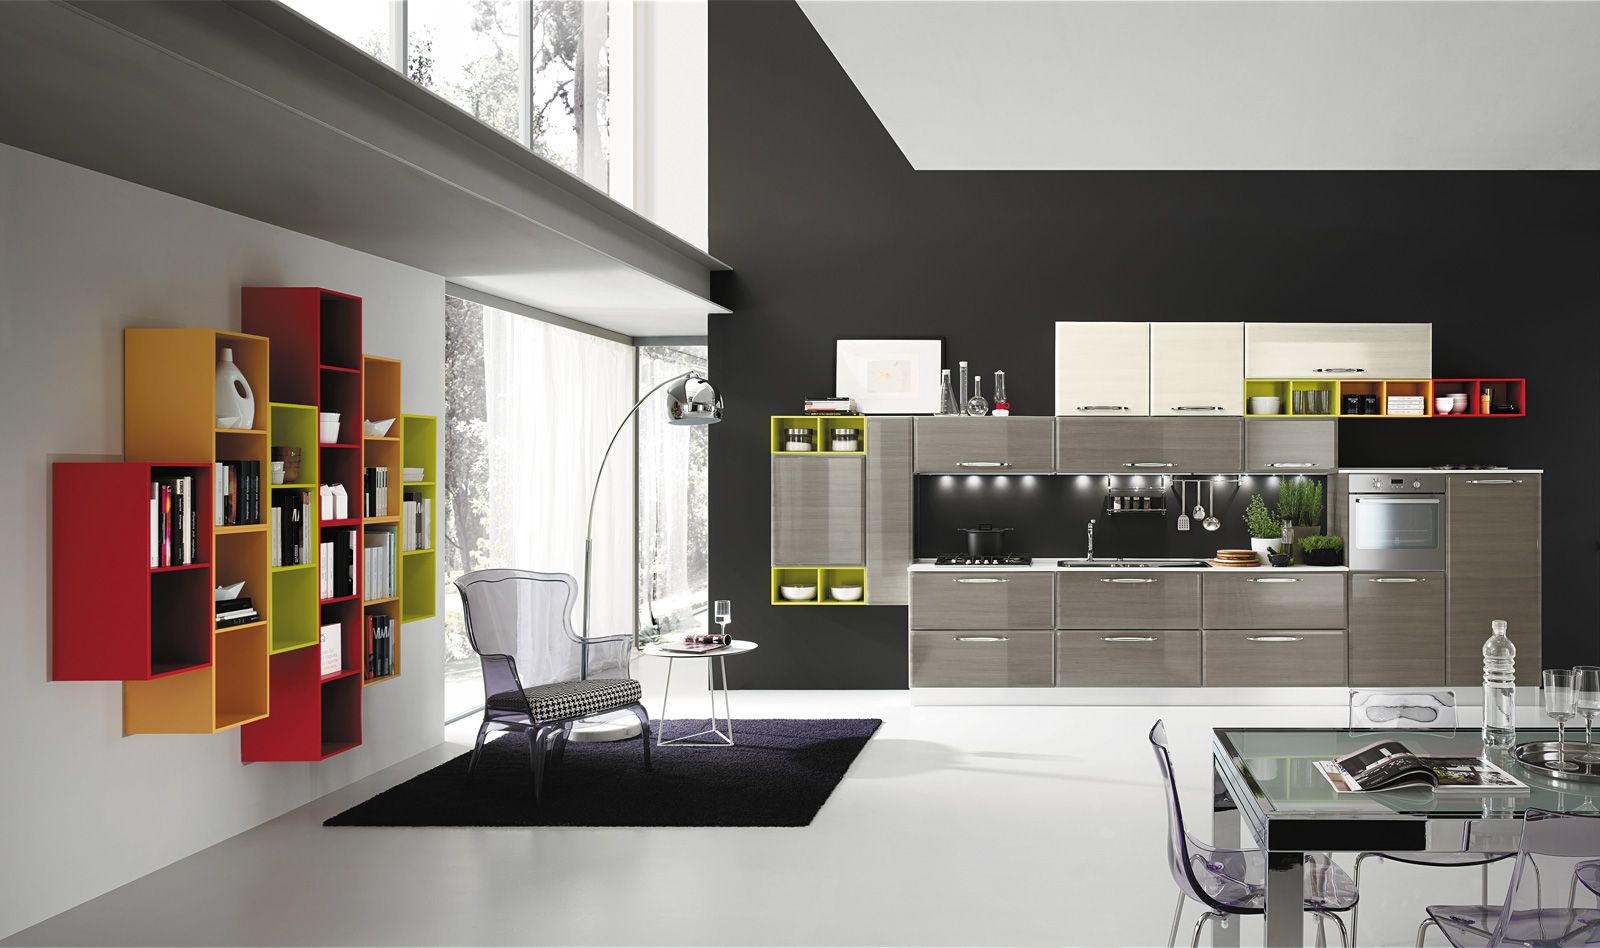 Awesome Mobilturi Cucine Prezzi Pictures - Brentwoodseasidecabins ...